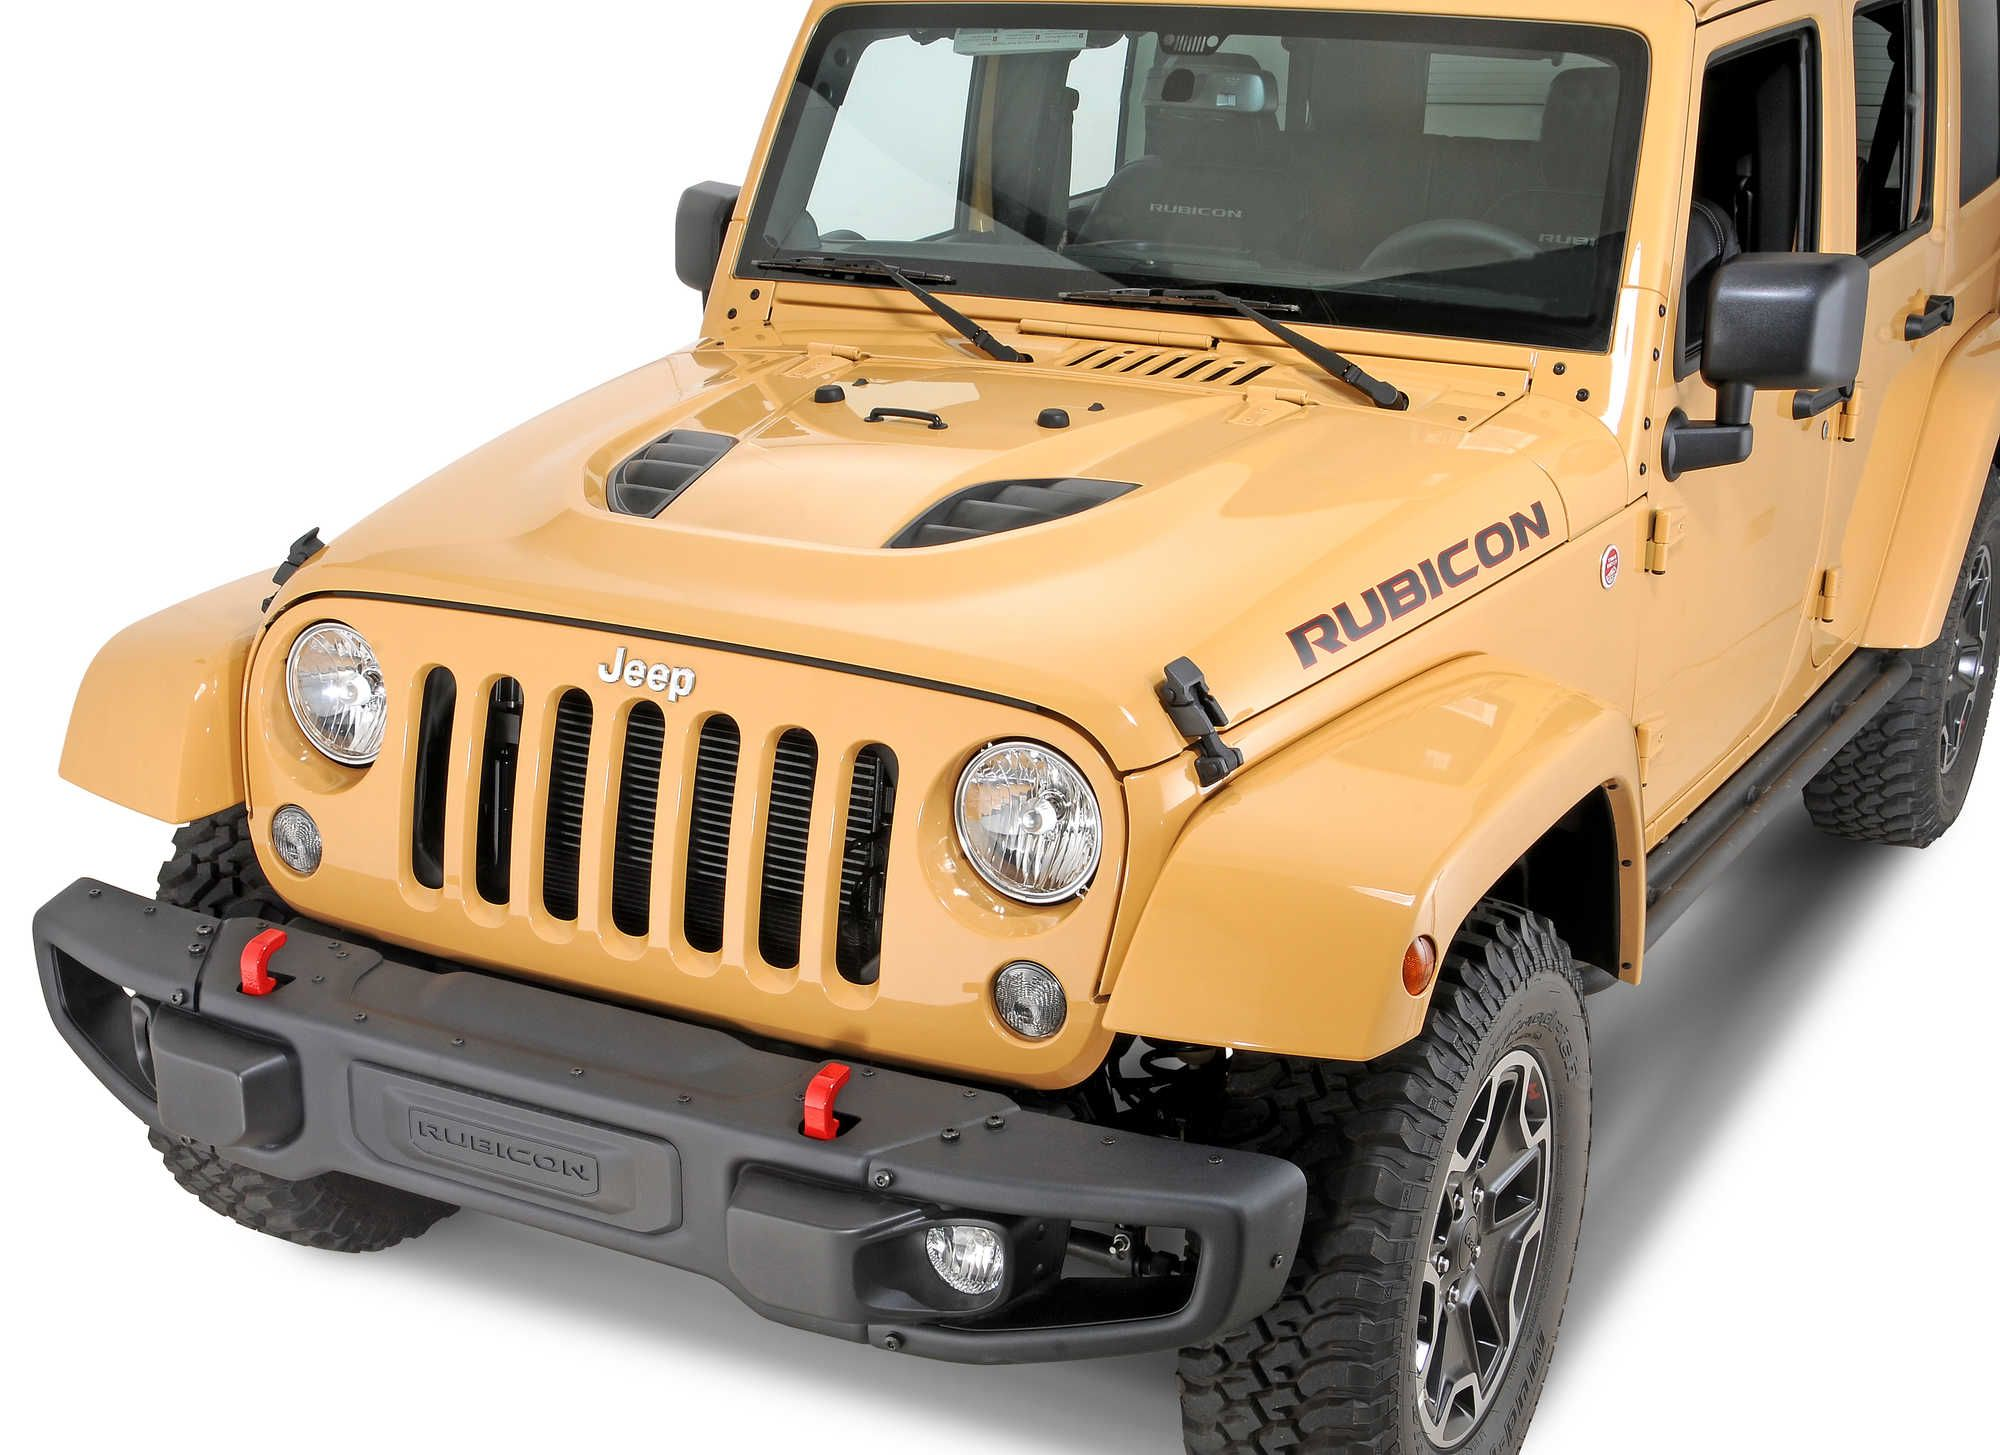 Introducing the all-new MOPAR Wrangler JK Hood featured on the ...